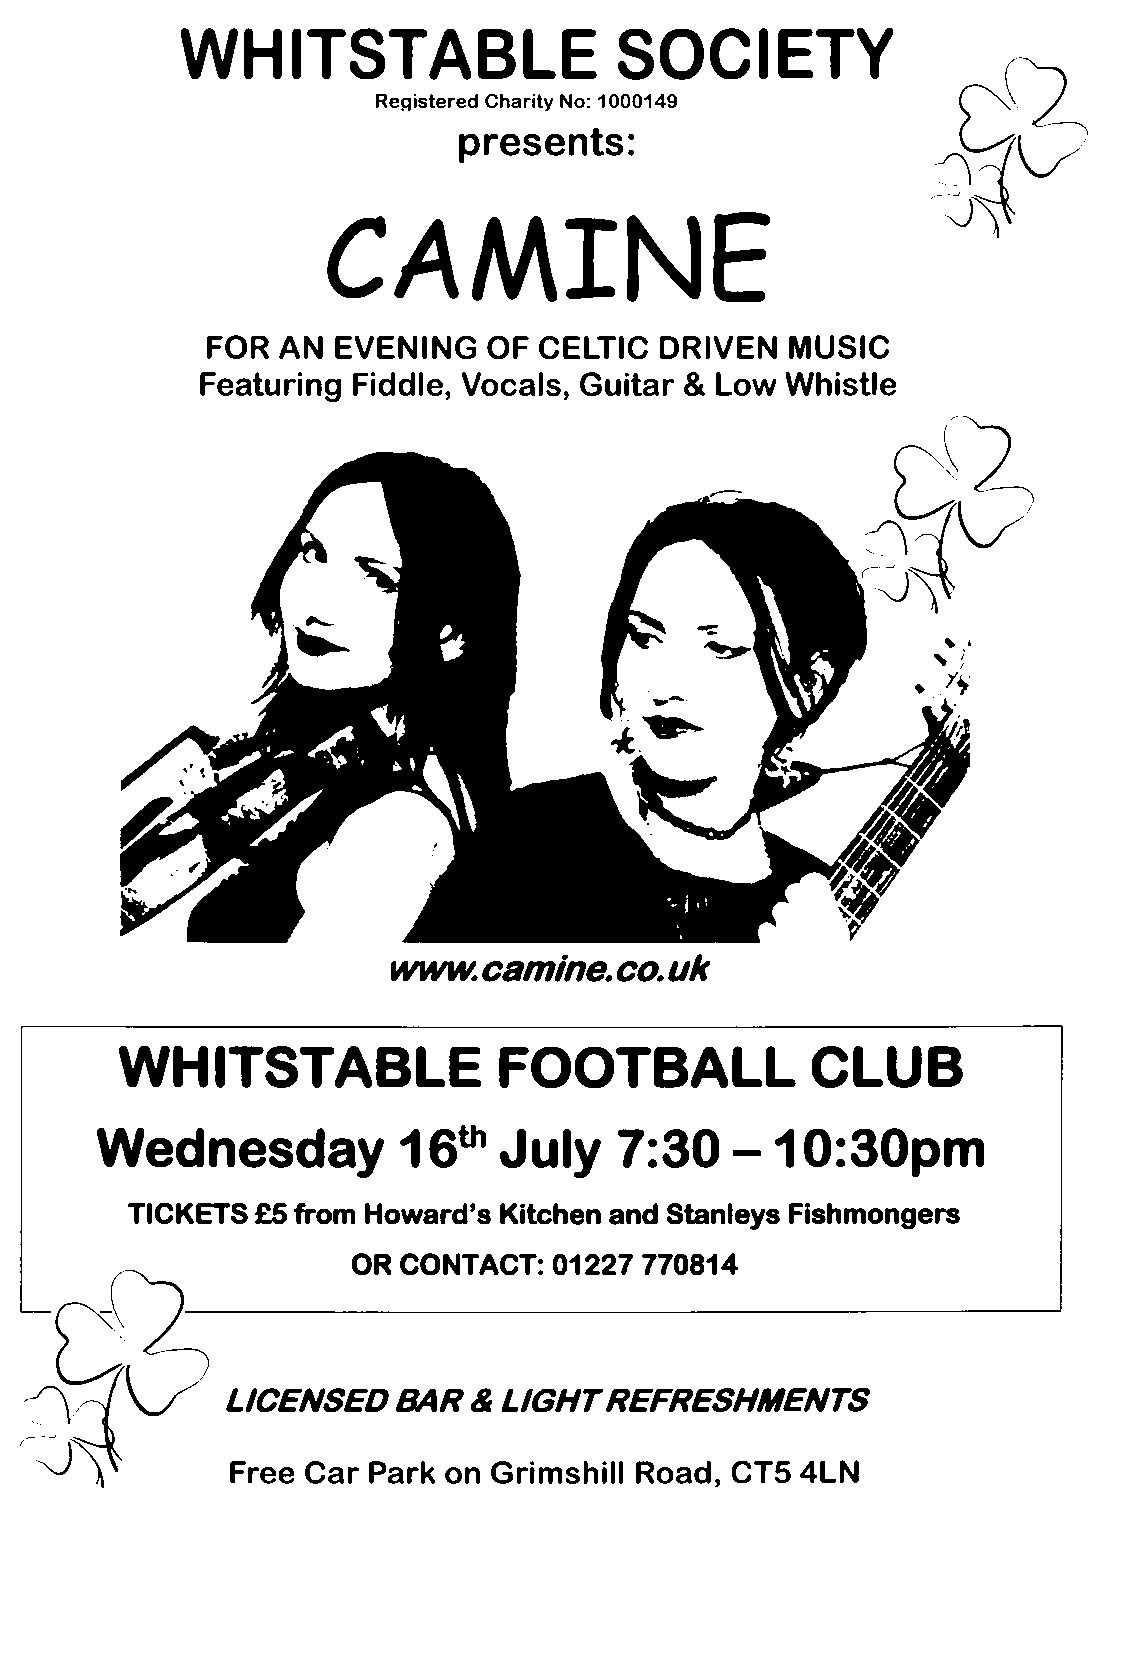 Whitstable Society Summer Concert